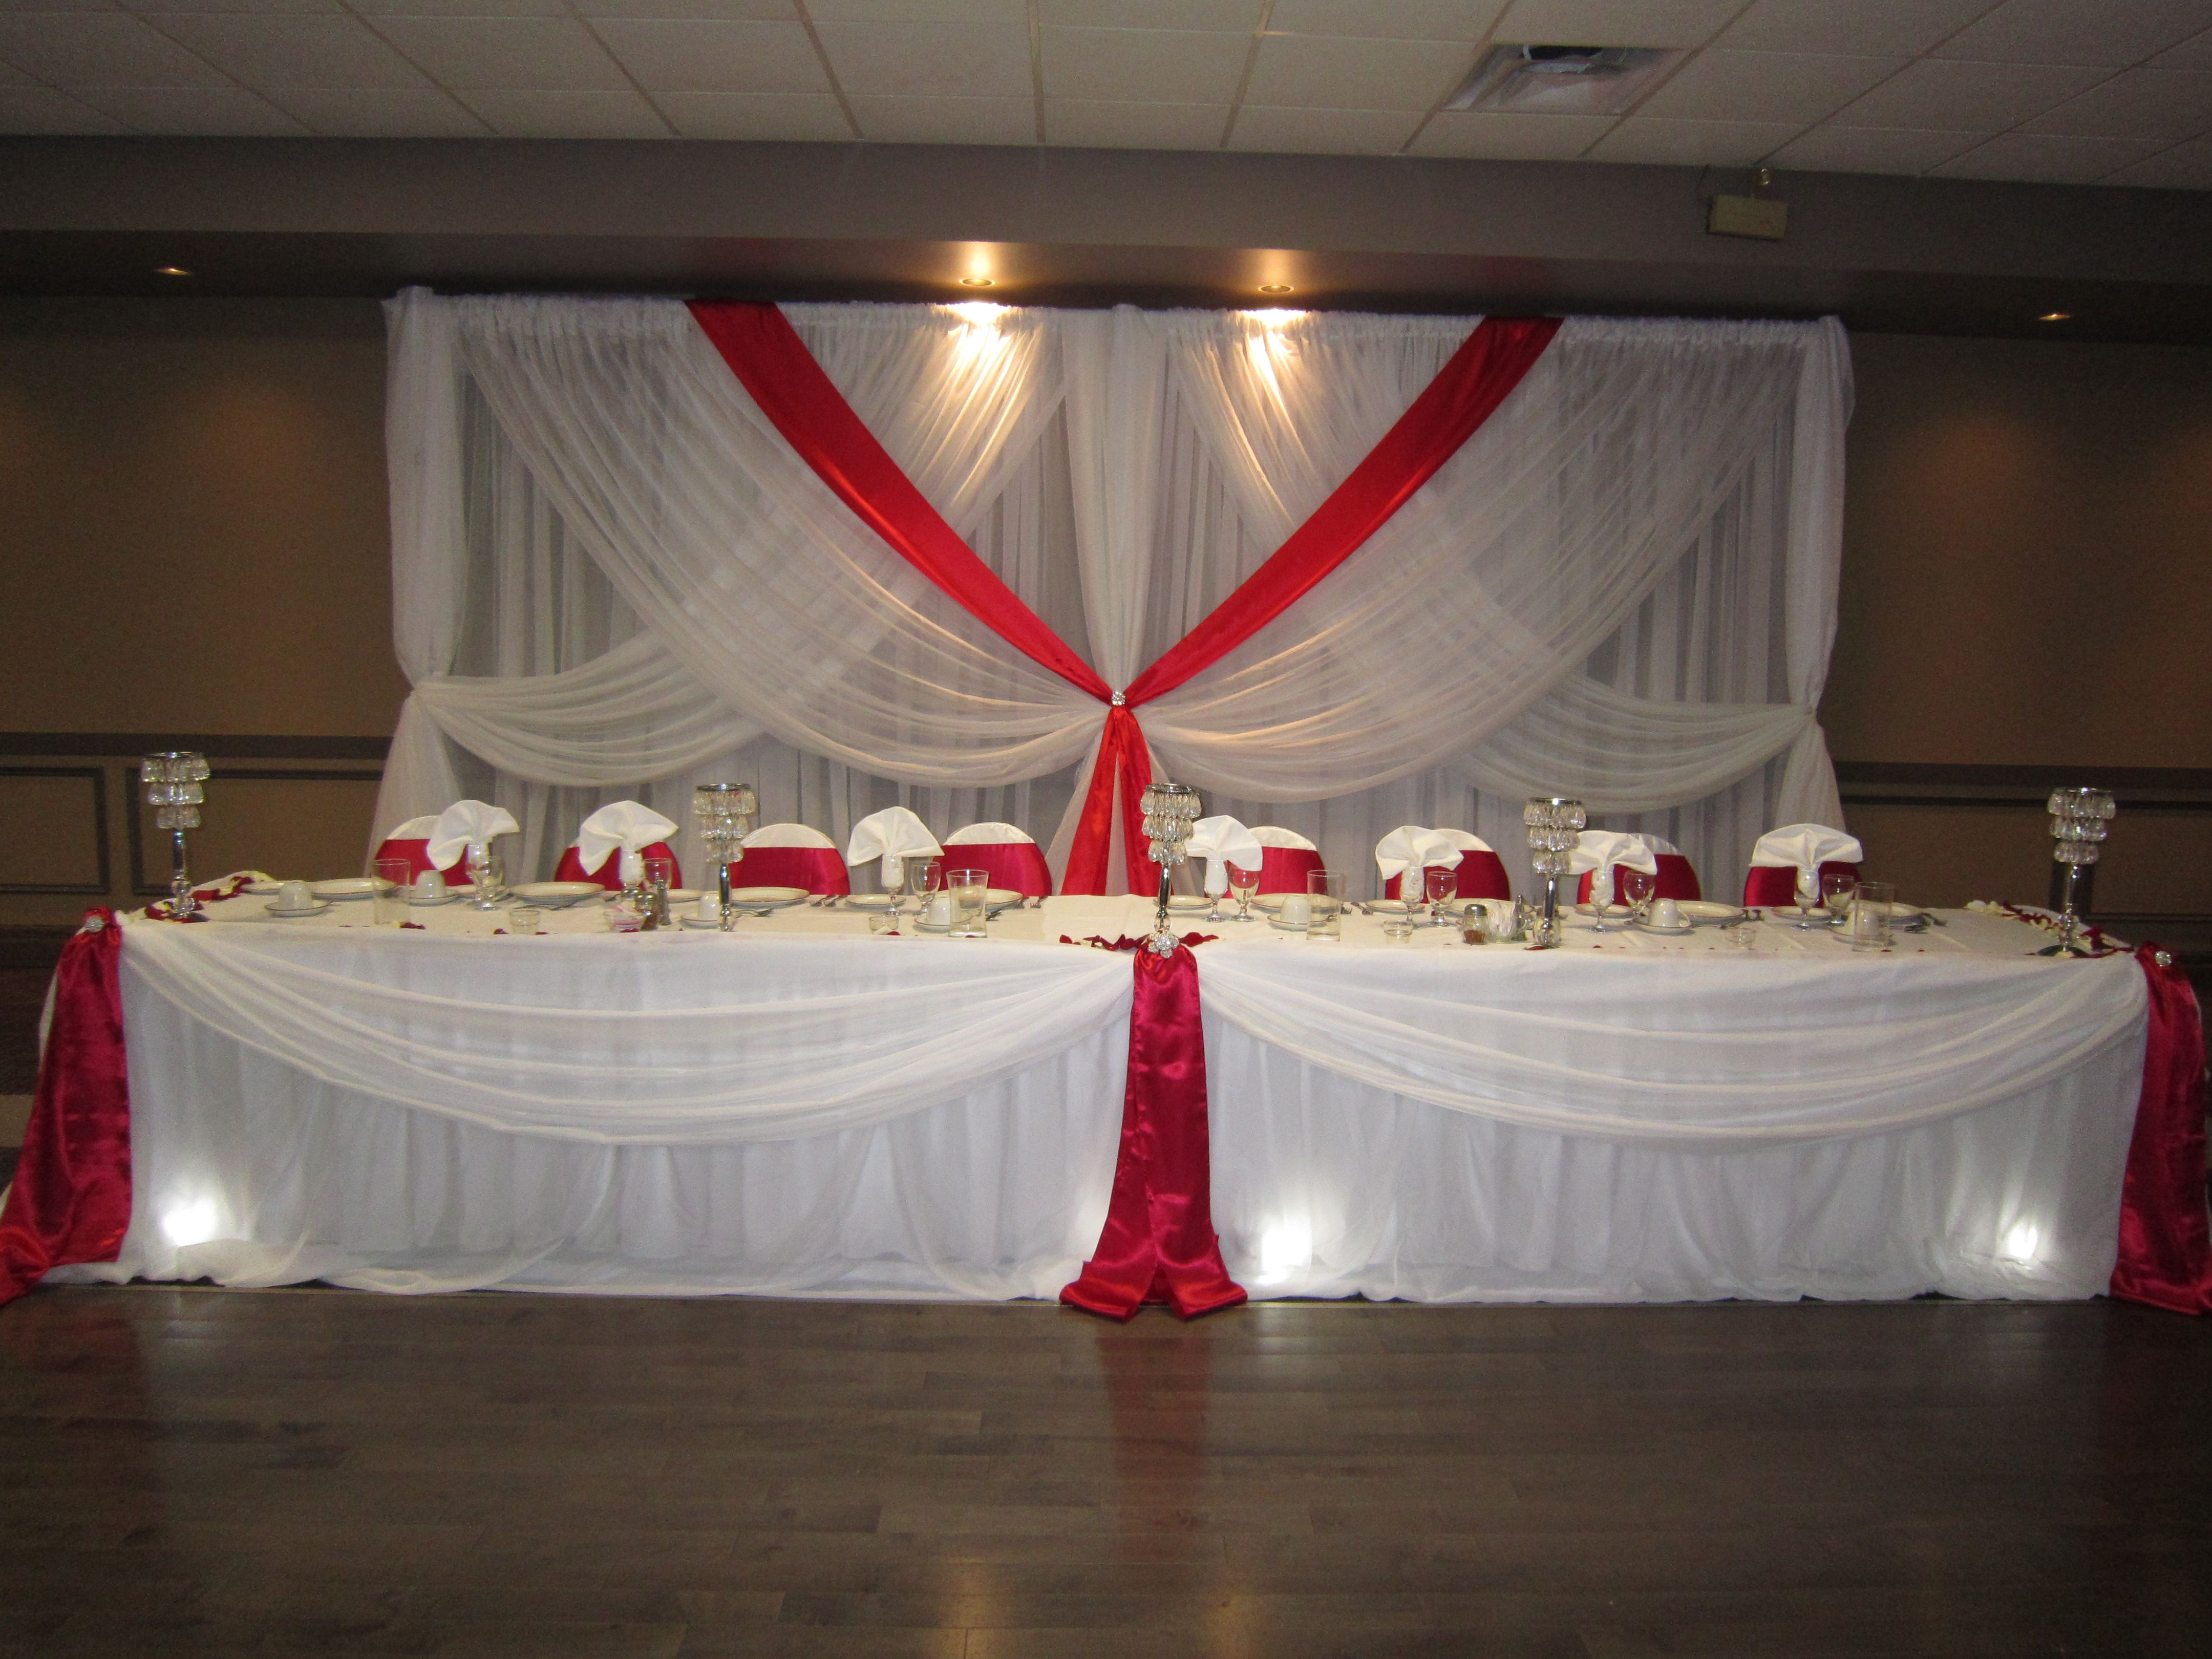 Wedding Table Black And Red Wedding Table Decorations black and red backdrop wedding decor pinterest search head backdrop